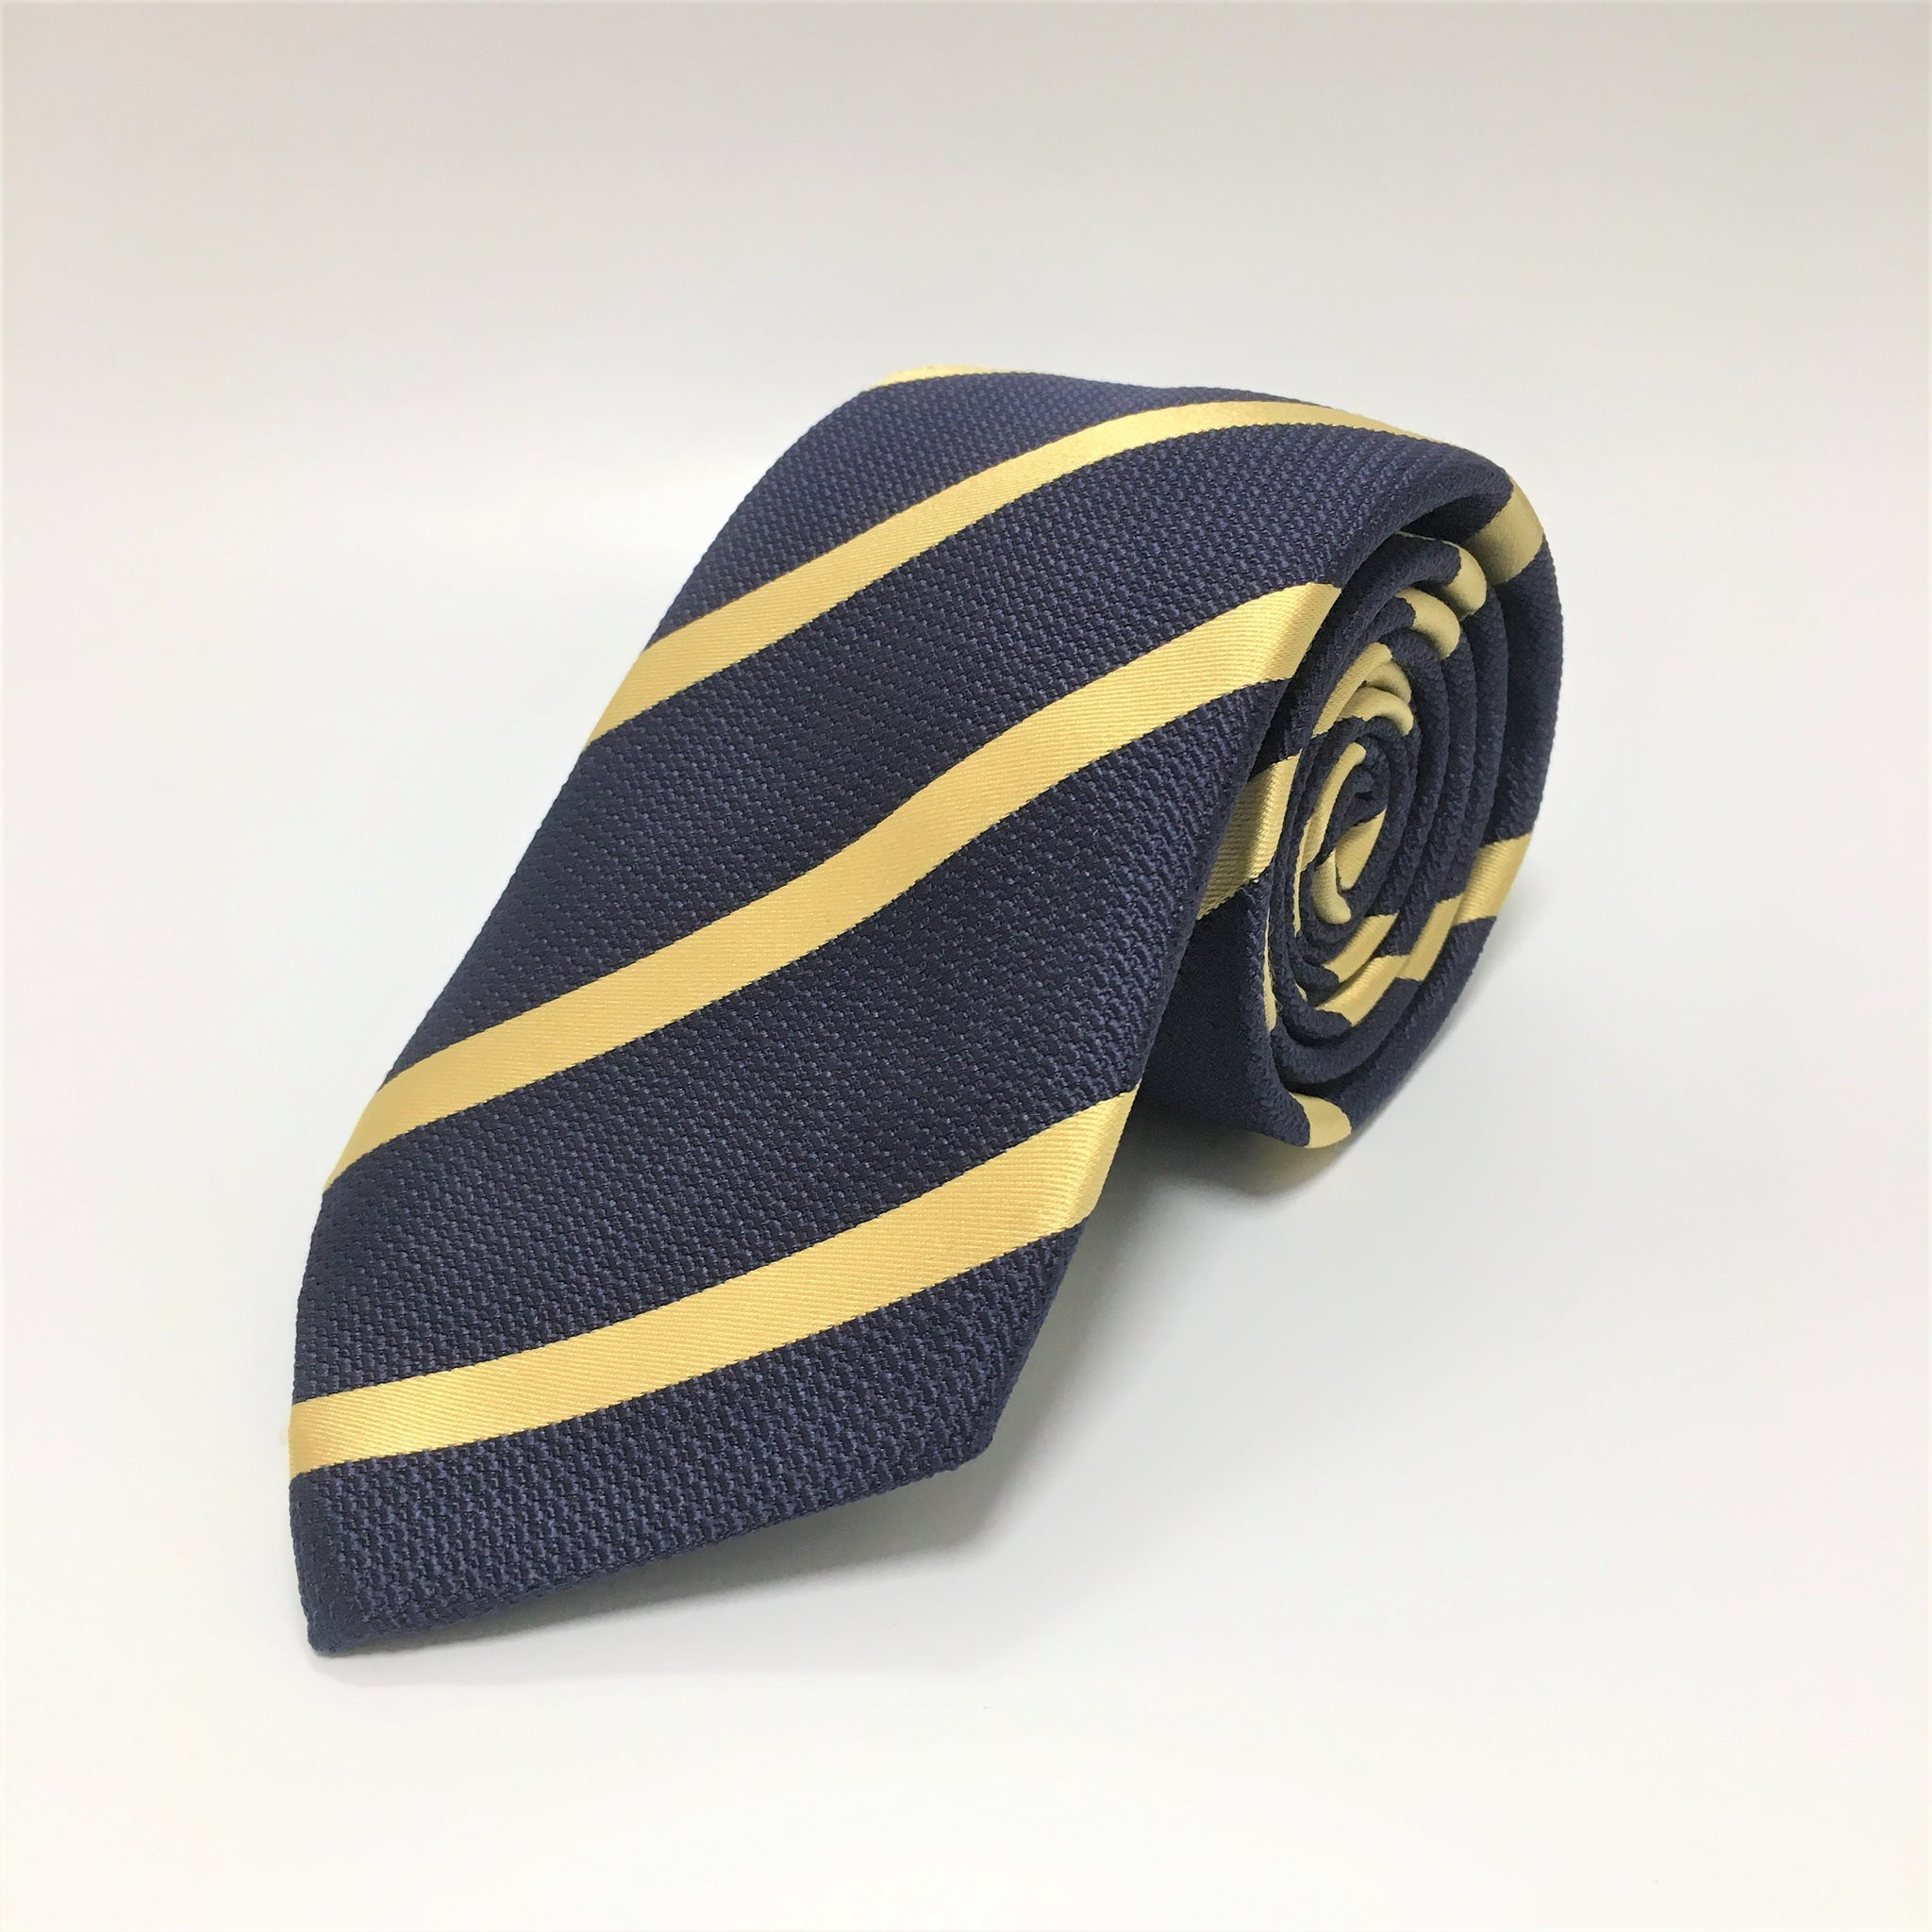 Navy silk tie with diagonal contrast gold stripe